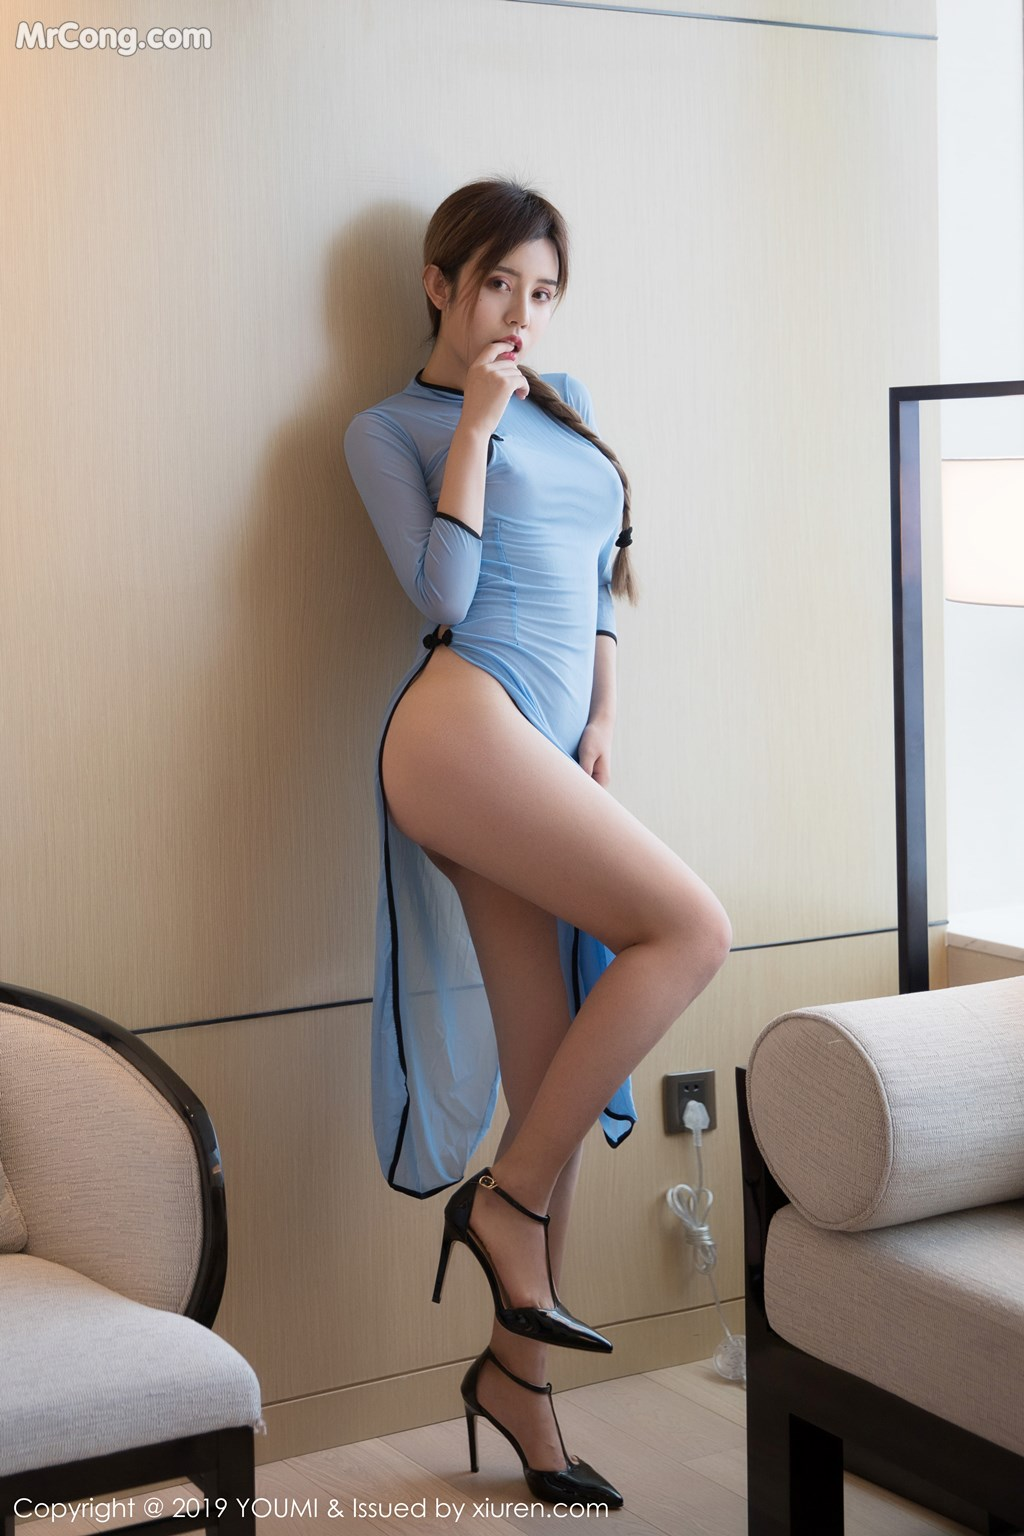 Image YouMi-Vol.353-Cris-MrCong.com-004 in post YouMi Vol.353: Cris_卓娅祺 (51 ảnh)